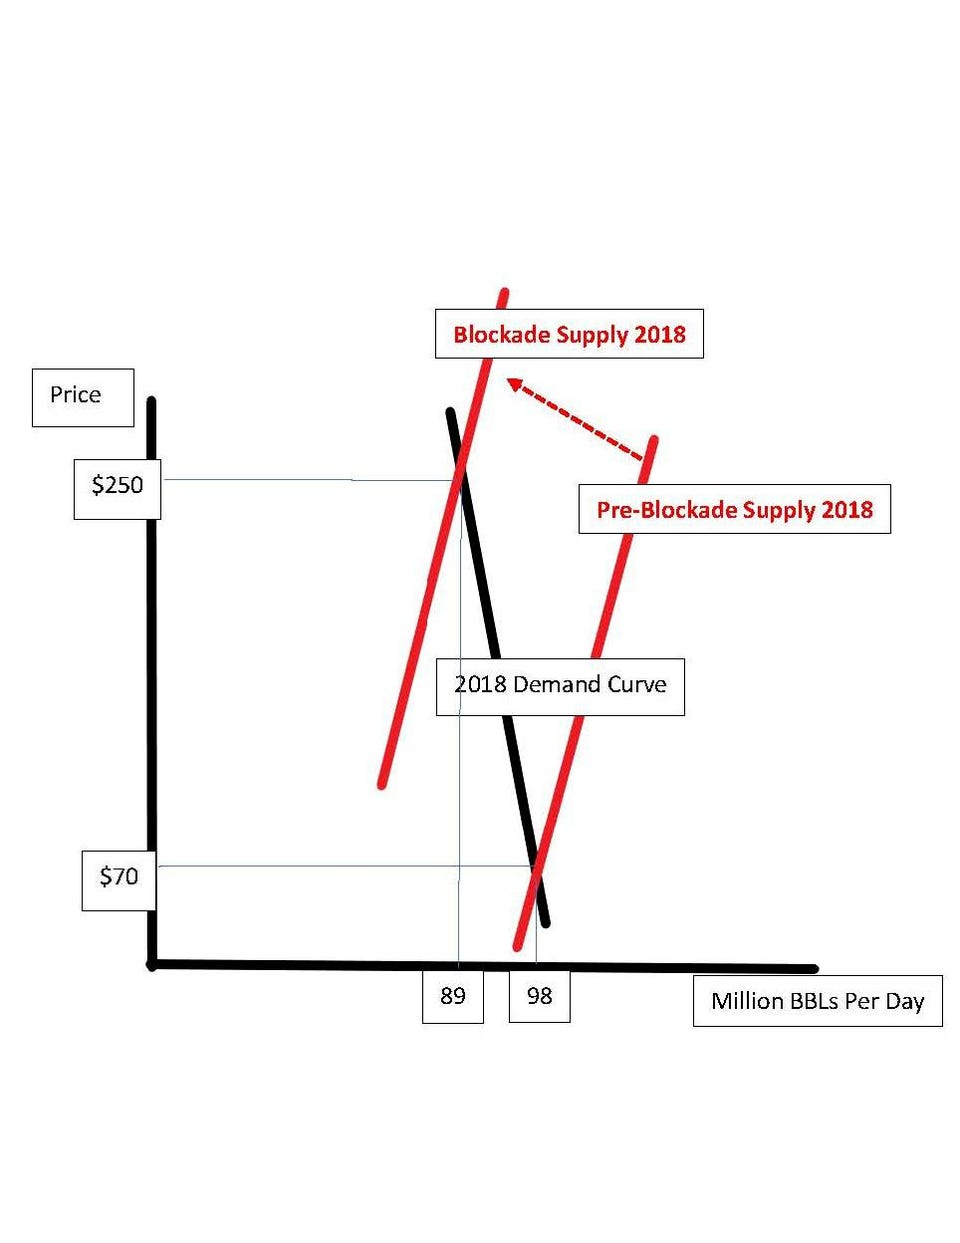 medium resolution of econ 10 diagram of impact of partial blockade 9 million barrels per day